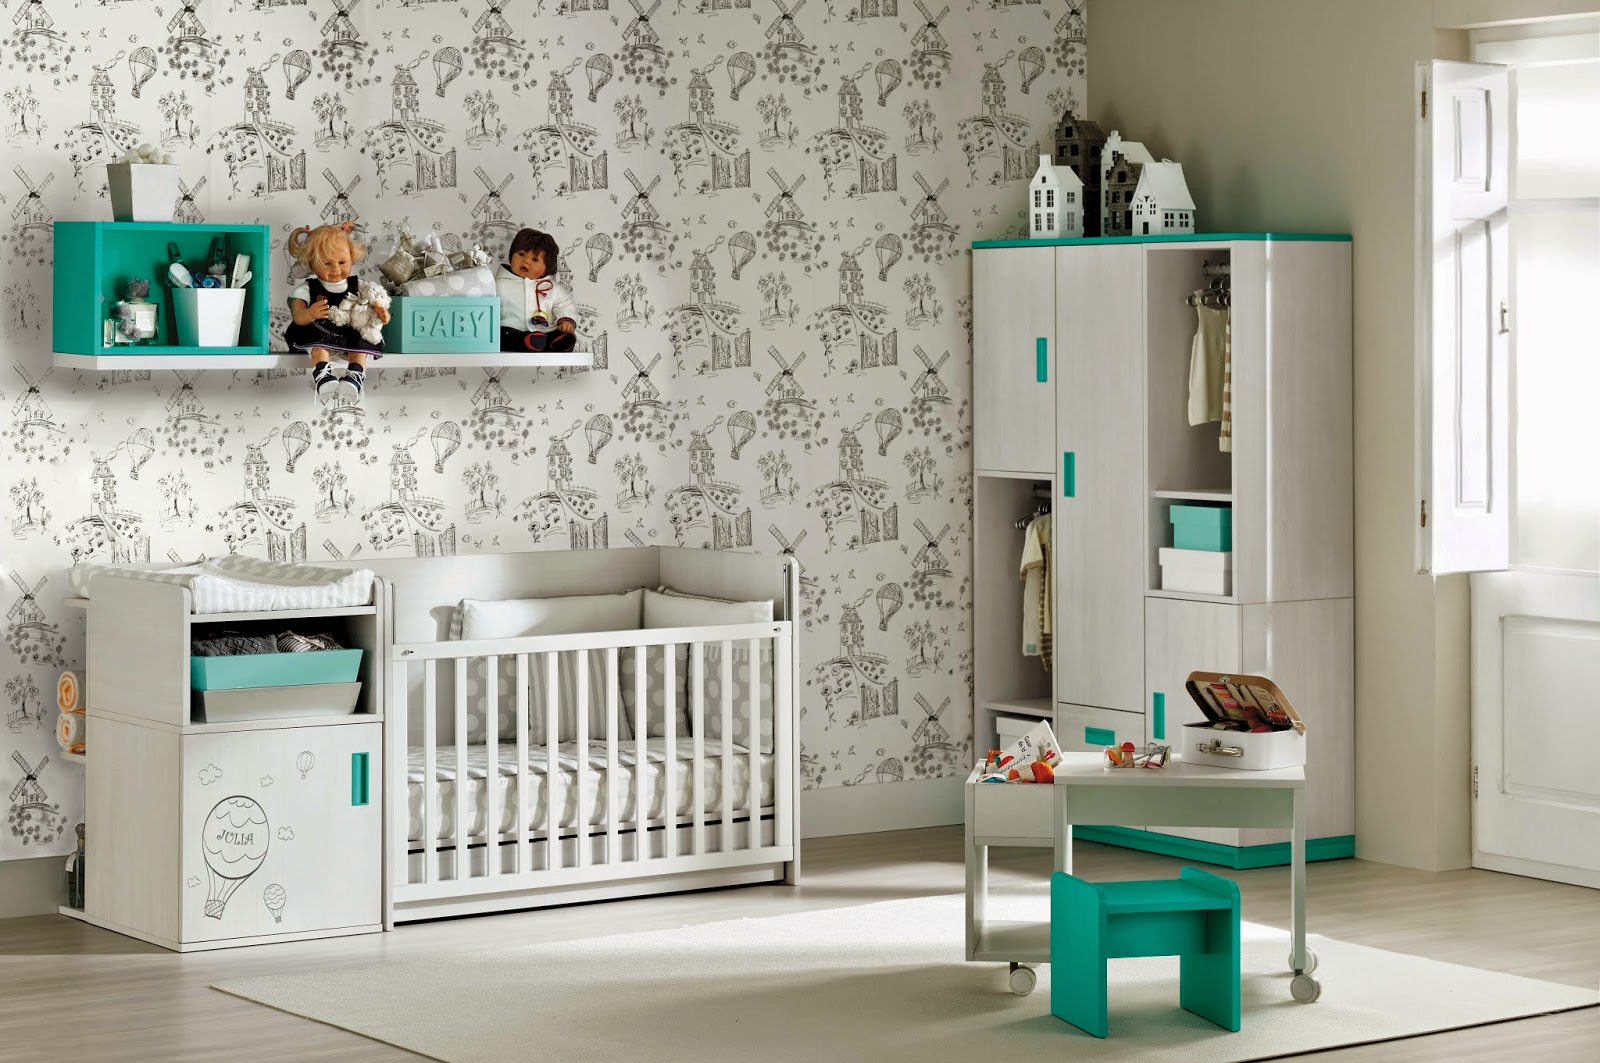 Baby bed for two year old - A Cot Will Probably Be Your Baby S Bed Until He Is Two Years Or Three Years Old It Should Be Strong And Sturdy Without Cracked Or Broken Slats